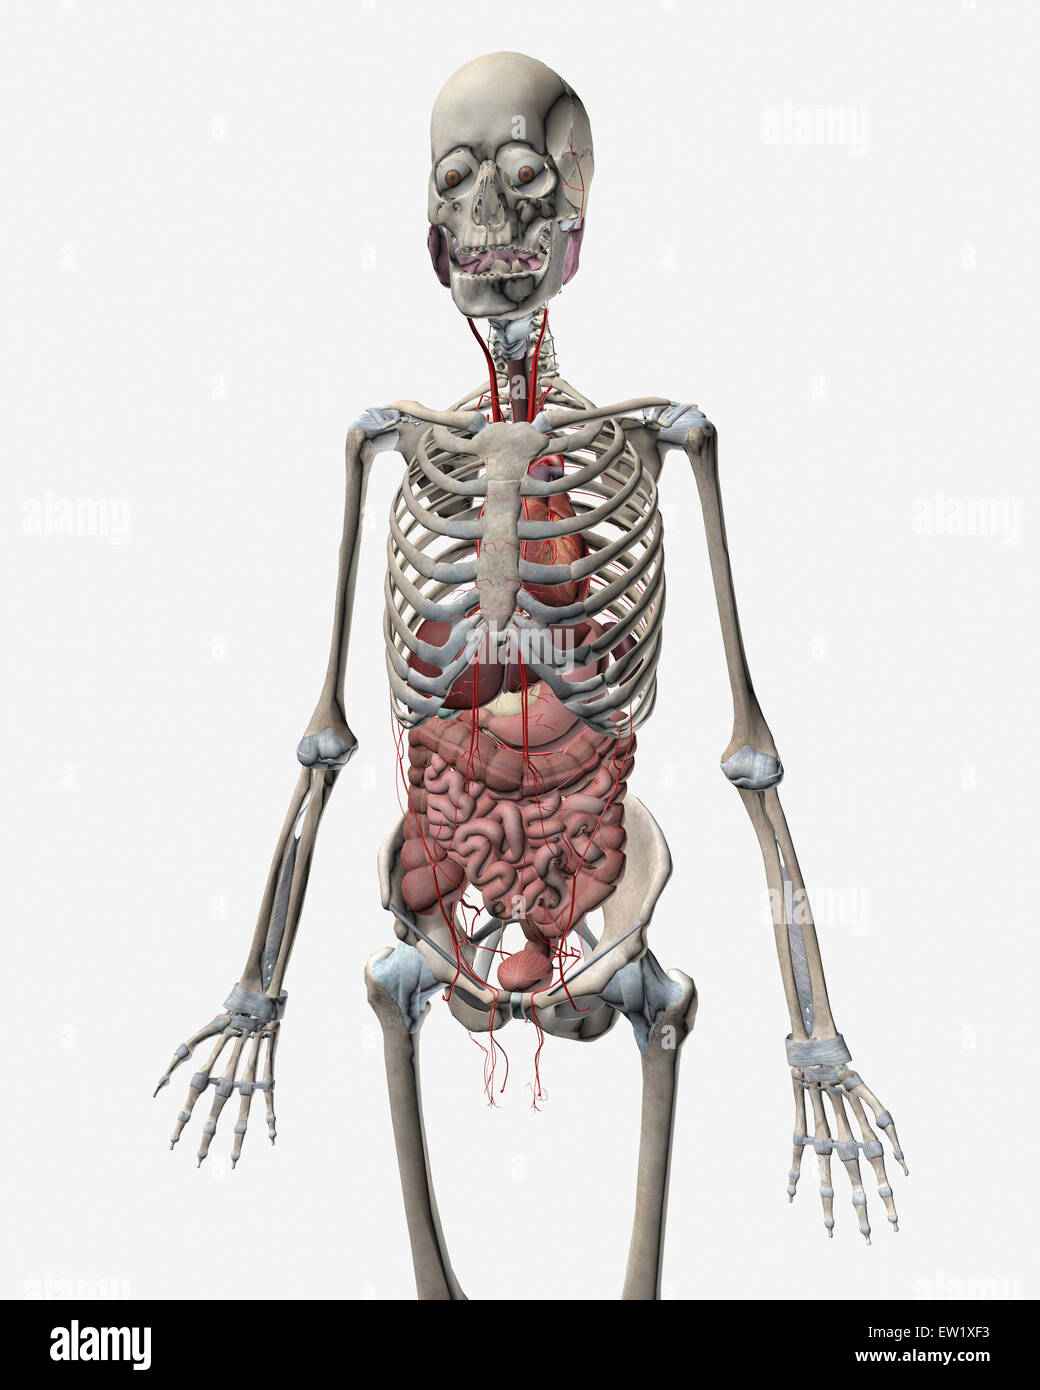 Human skeletal system with organs of the digestive system visible human skeletal system with organs of the digestive system visible ccuart Image collections